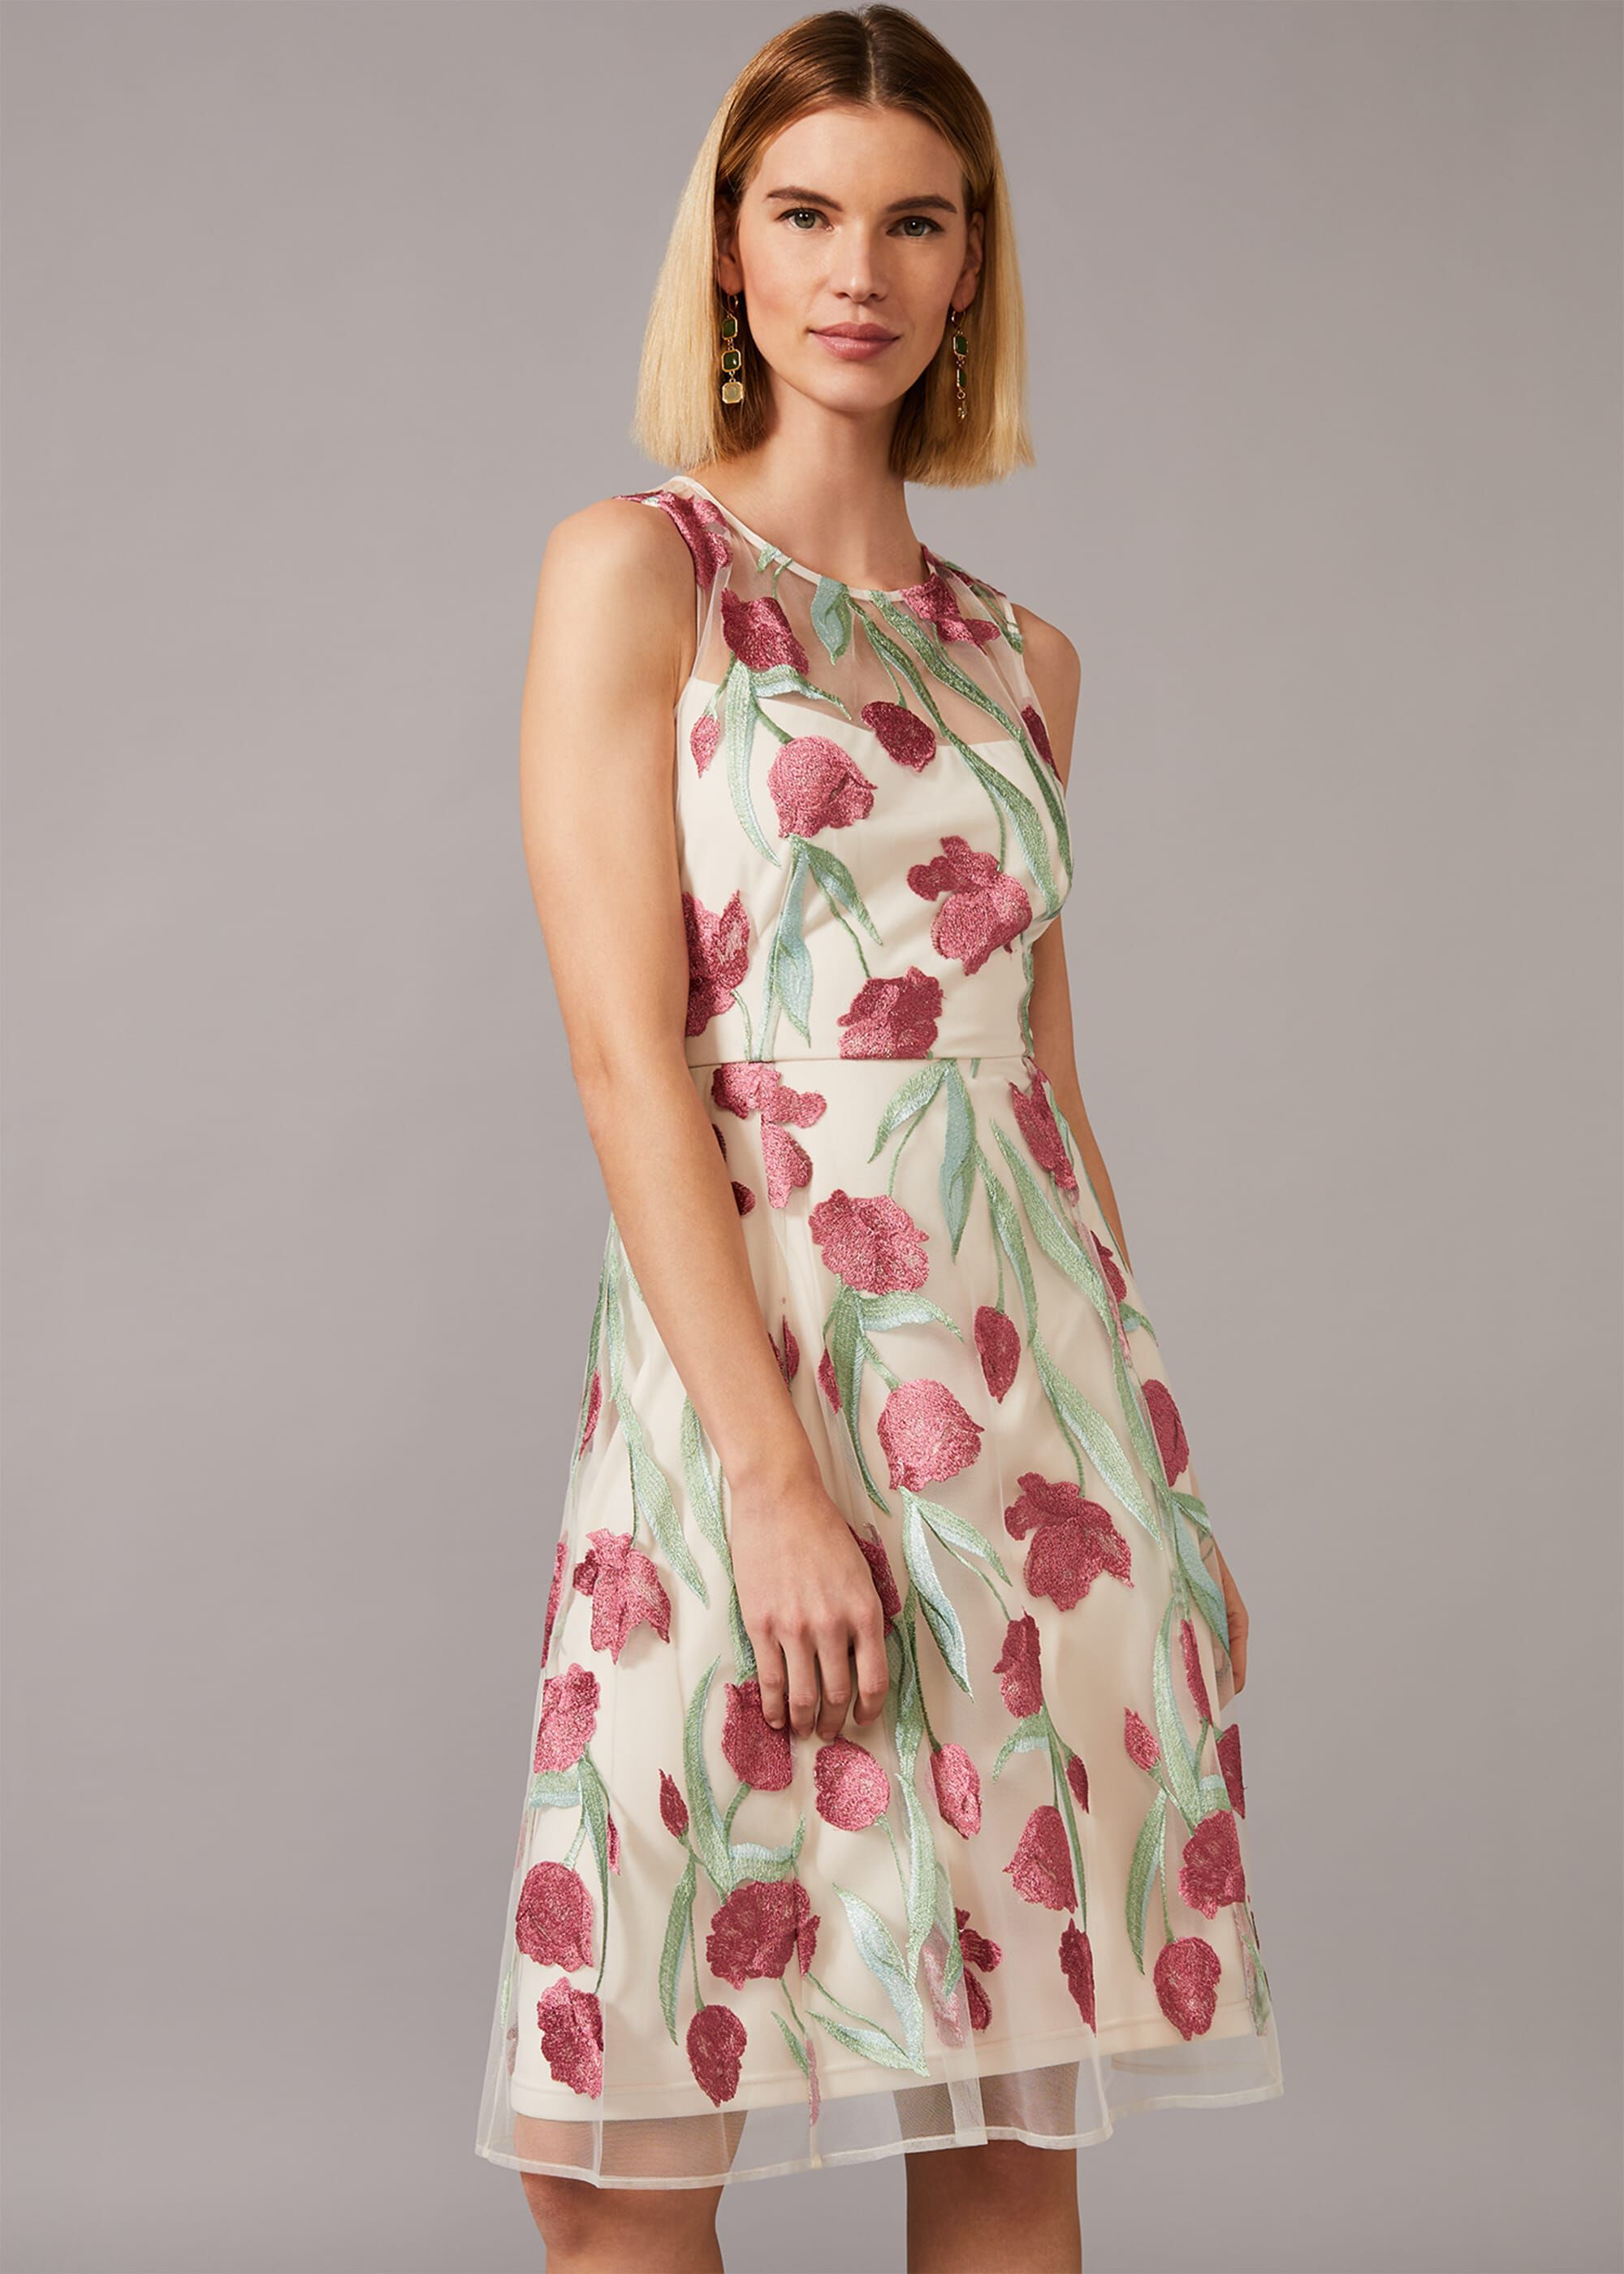 Phase Eight Shae Floral Embroidered Dress, Cream, Fit & Flare